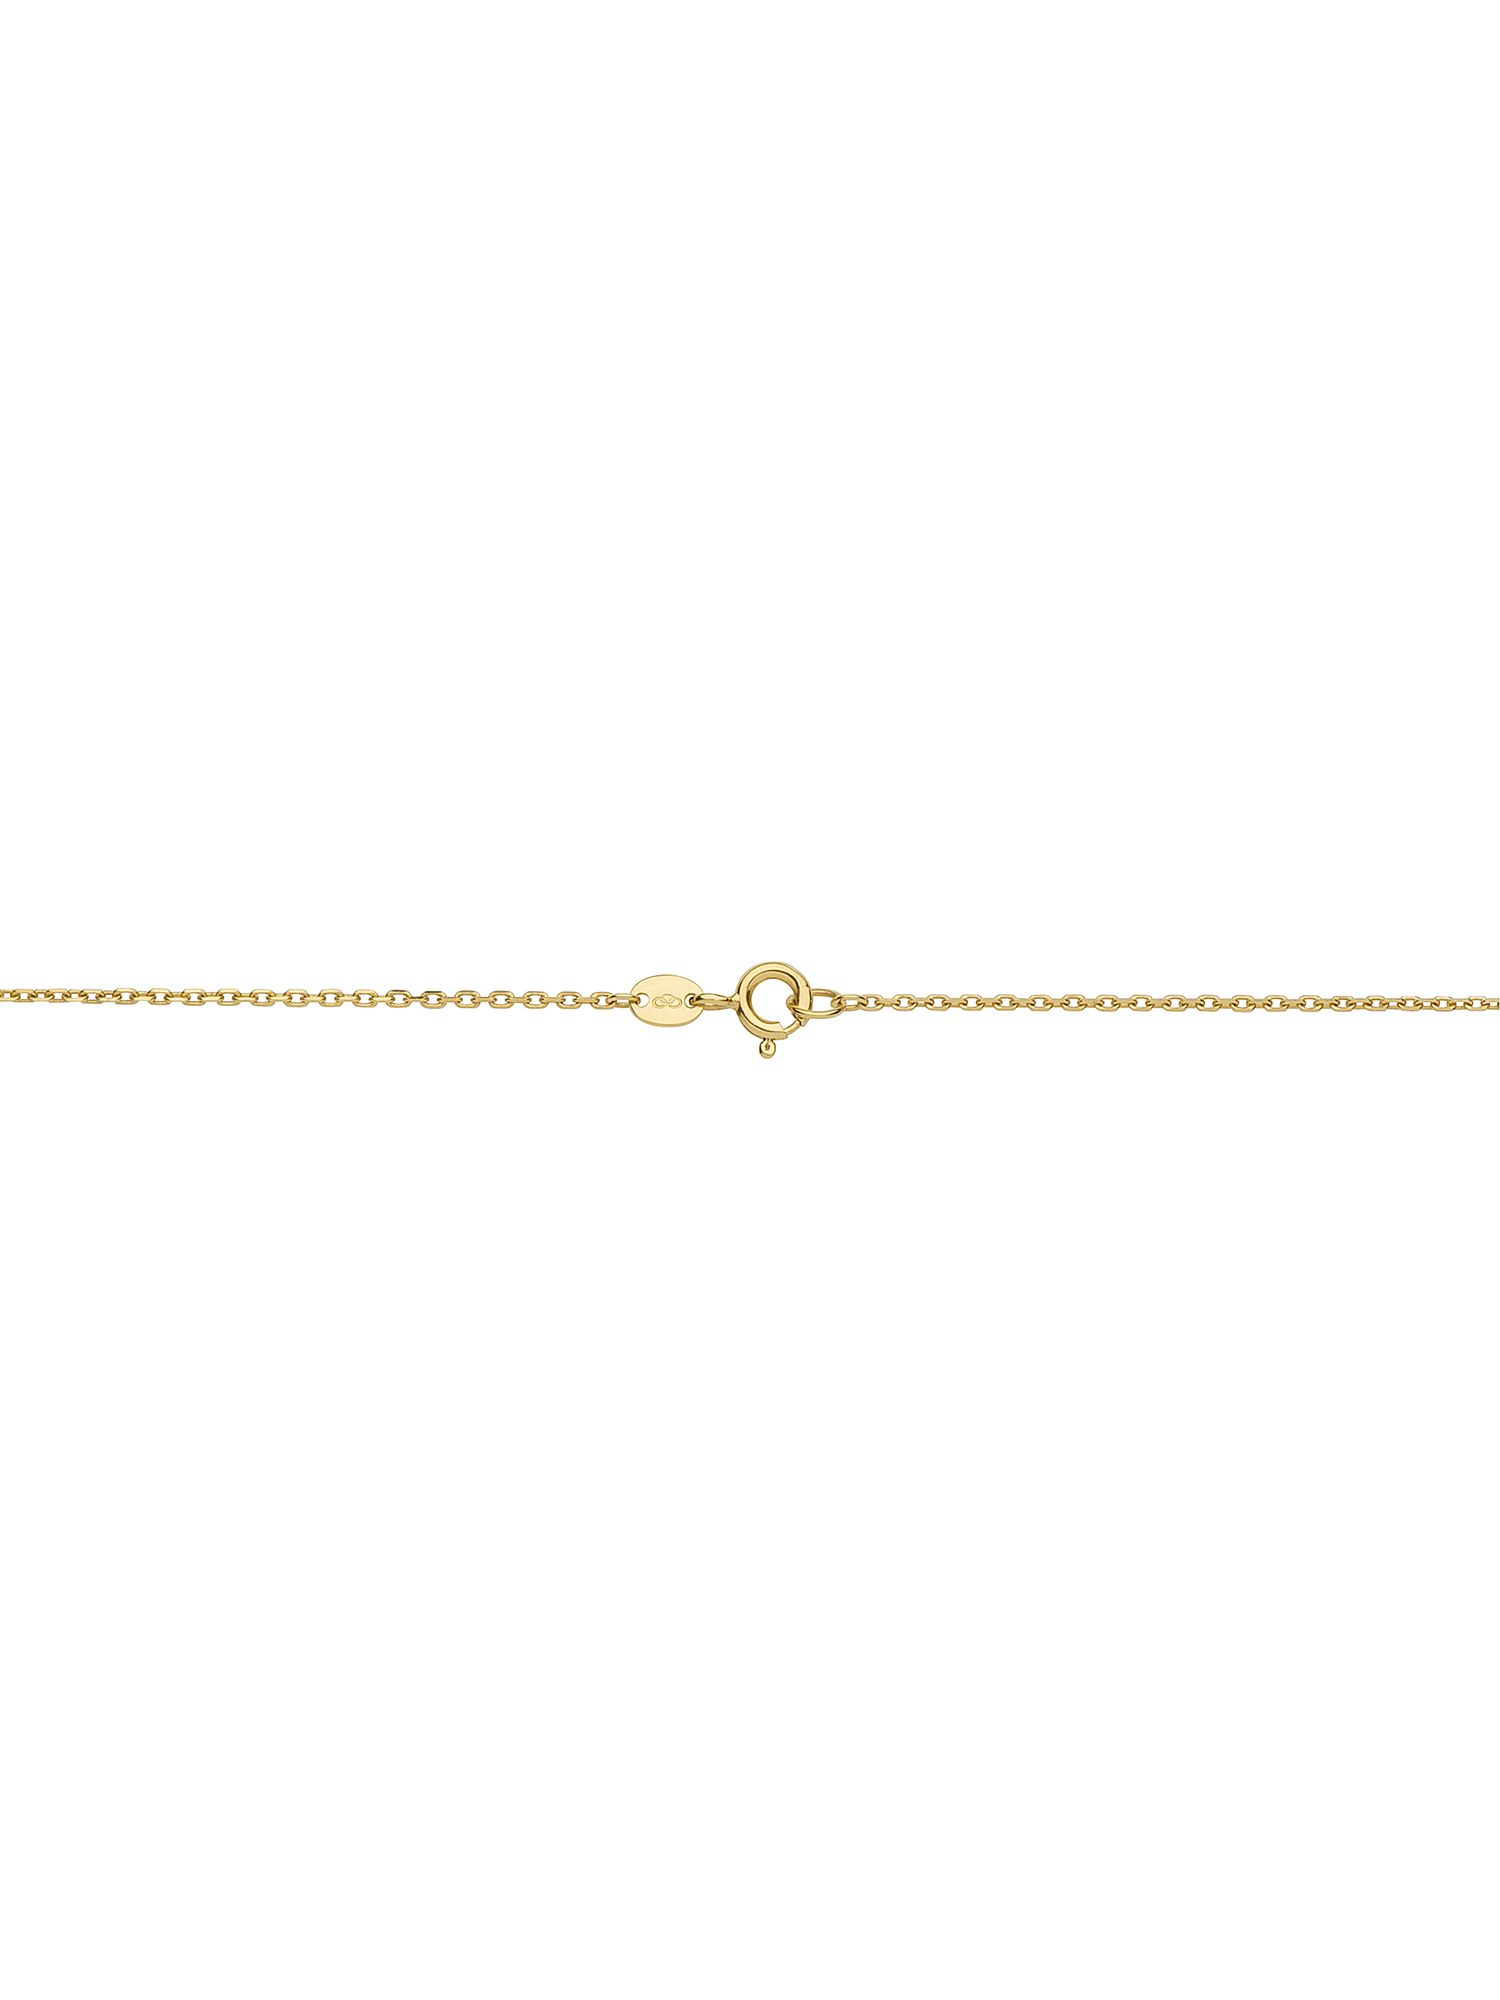 Effervescence bubble tassle 18ct gold necklace